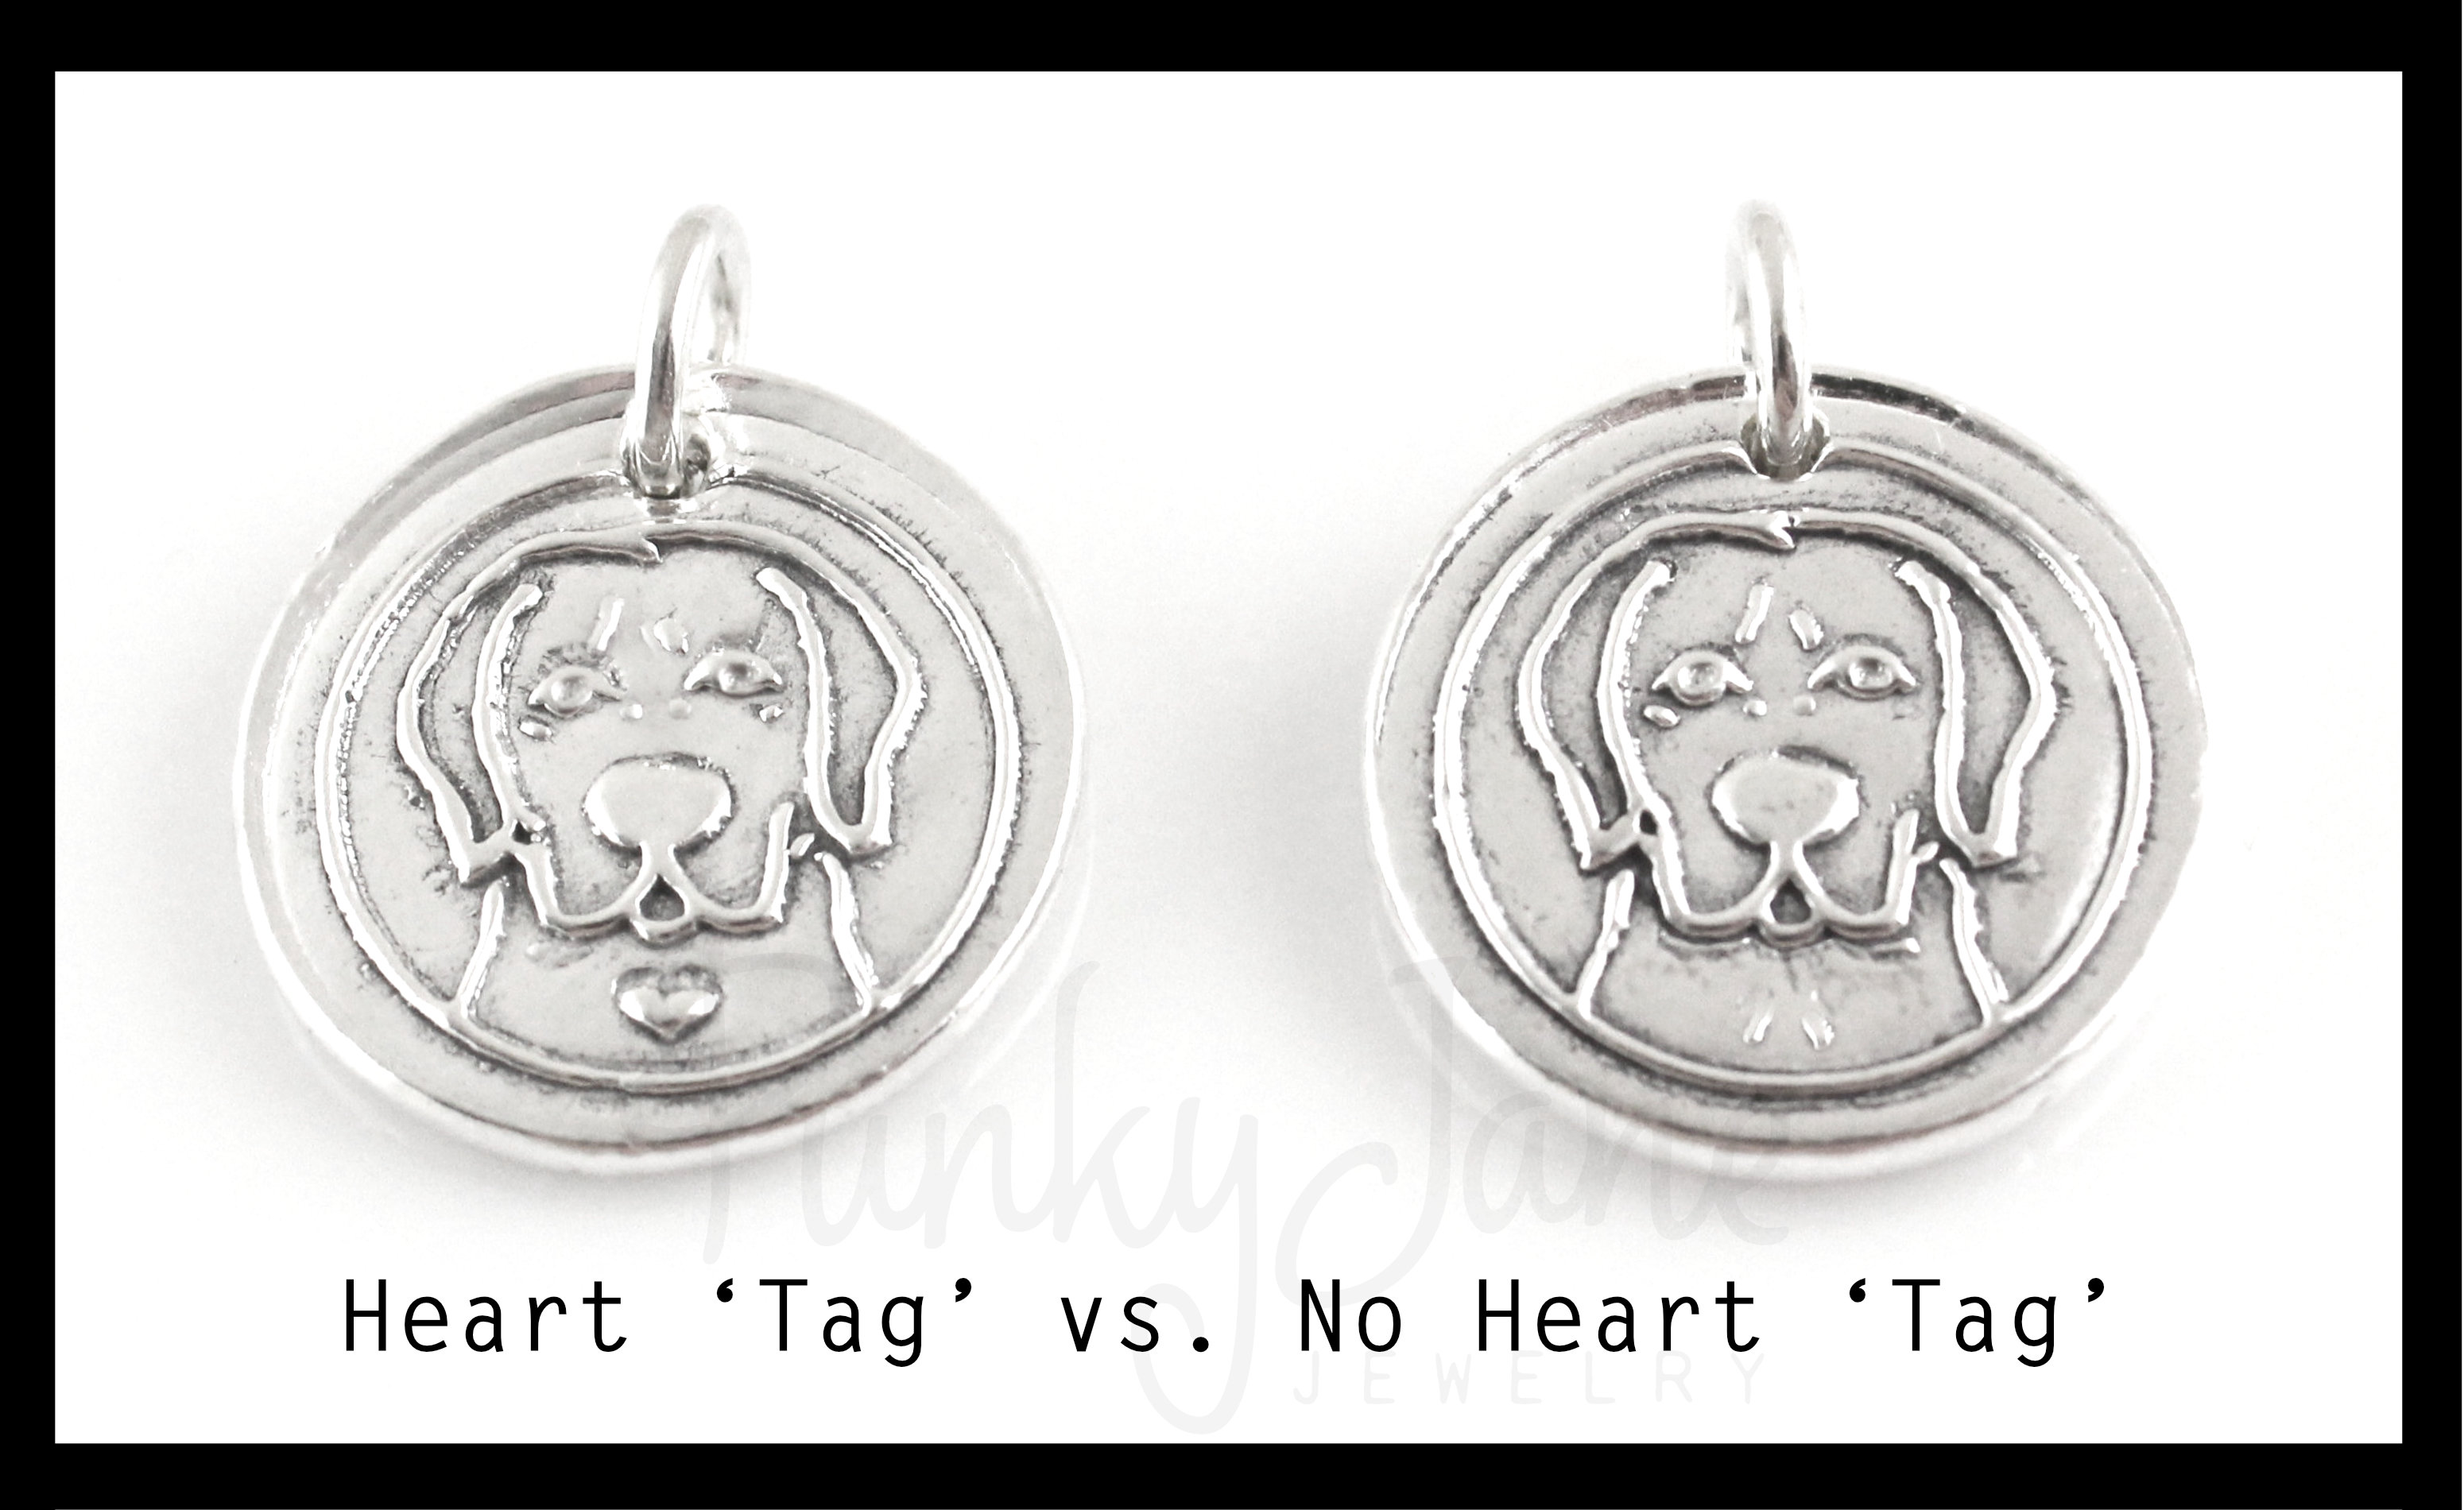 Each dog breed design can have a heart 'tag' on its chest or not.